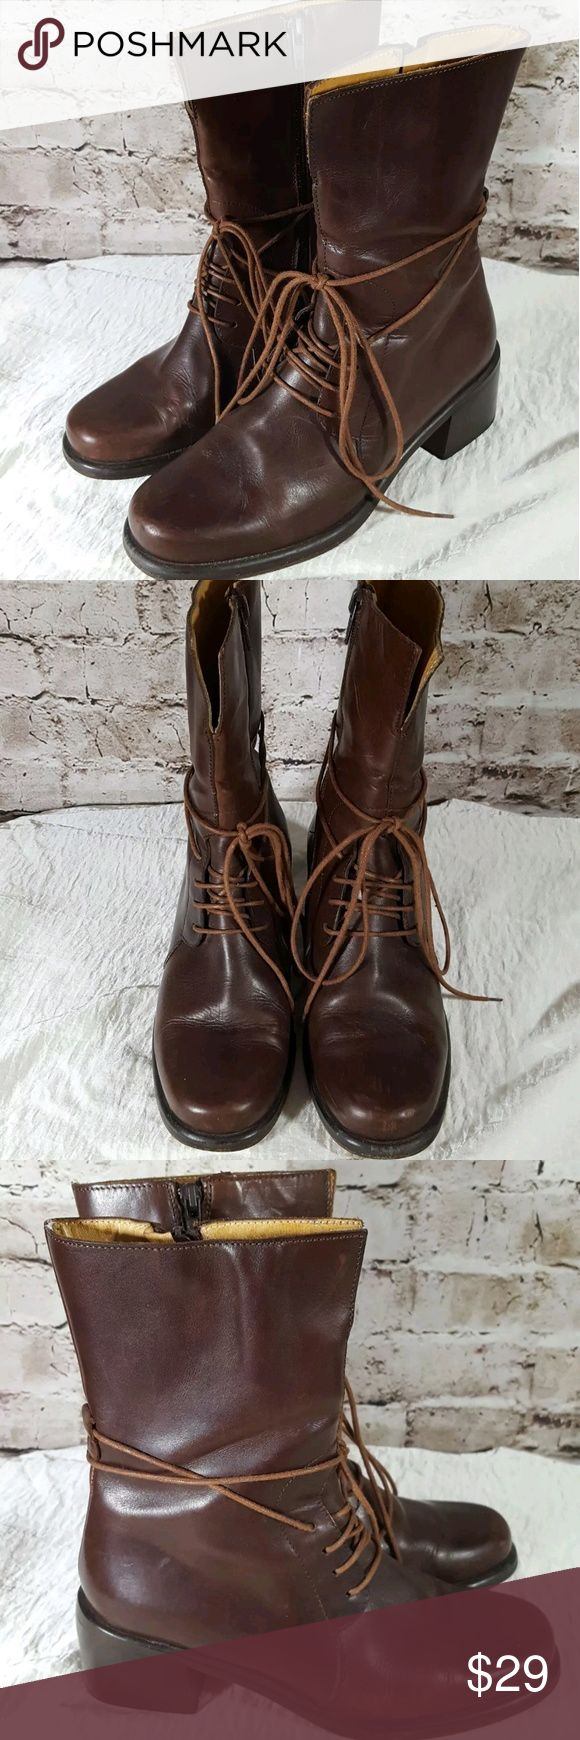 """JOAN & DAVID Vintage Brown Leather Lace-up Boots Joan and David Vintage Classy Combat Boot Eu size 36 US Womens size 5.5/6? Heel height 2""""? Hand made in Italy? Genuine leather Joan & David Shoes Ankle Boots & Booties"""